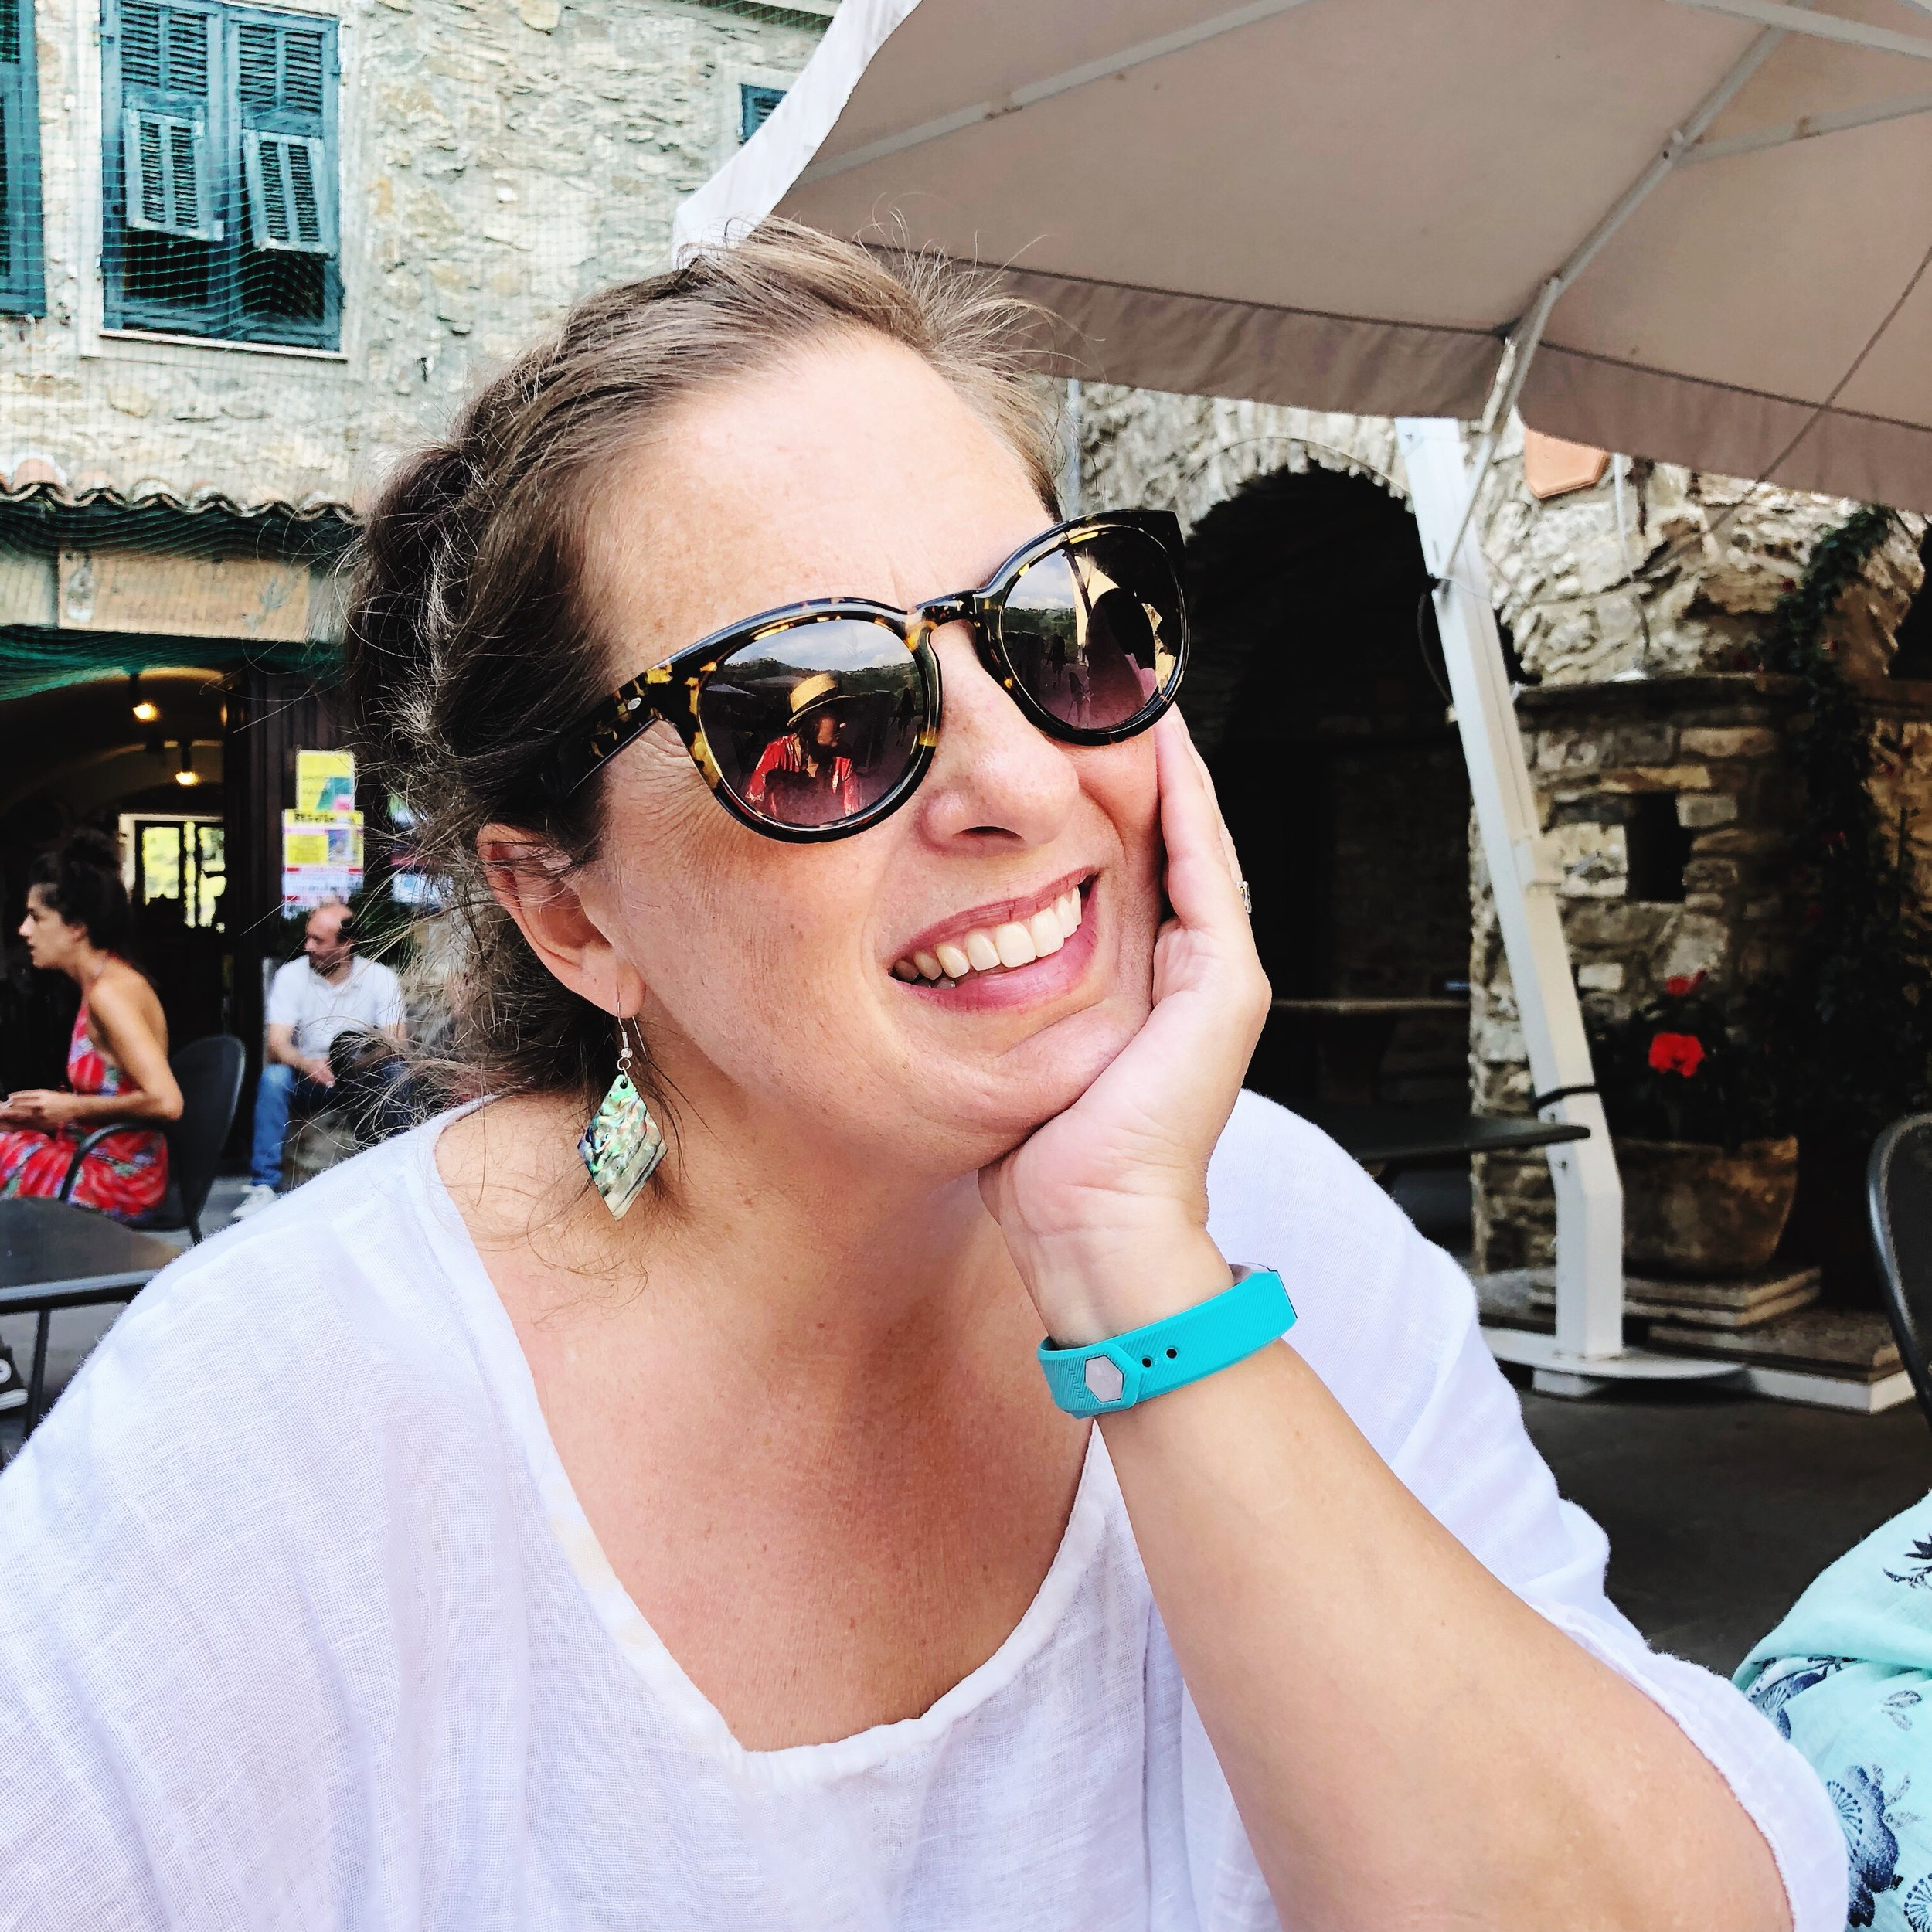 Me having lunch in the piazza in Apricale, Italy.